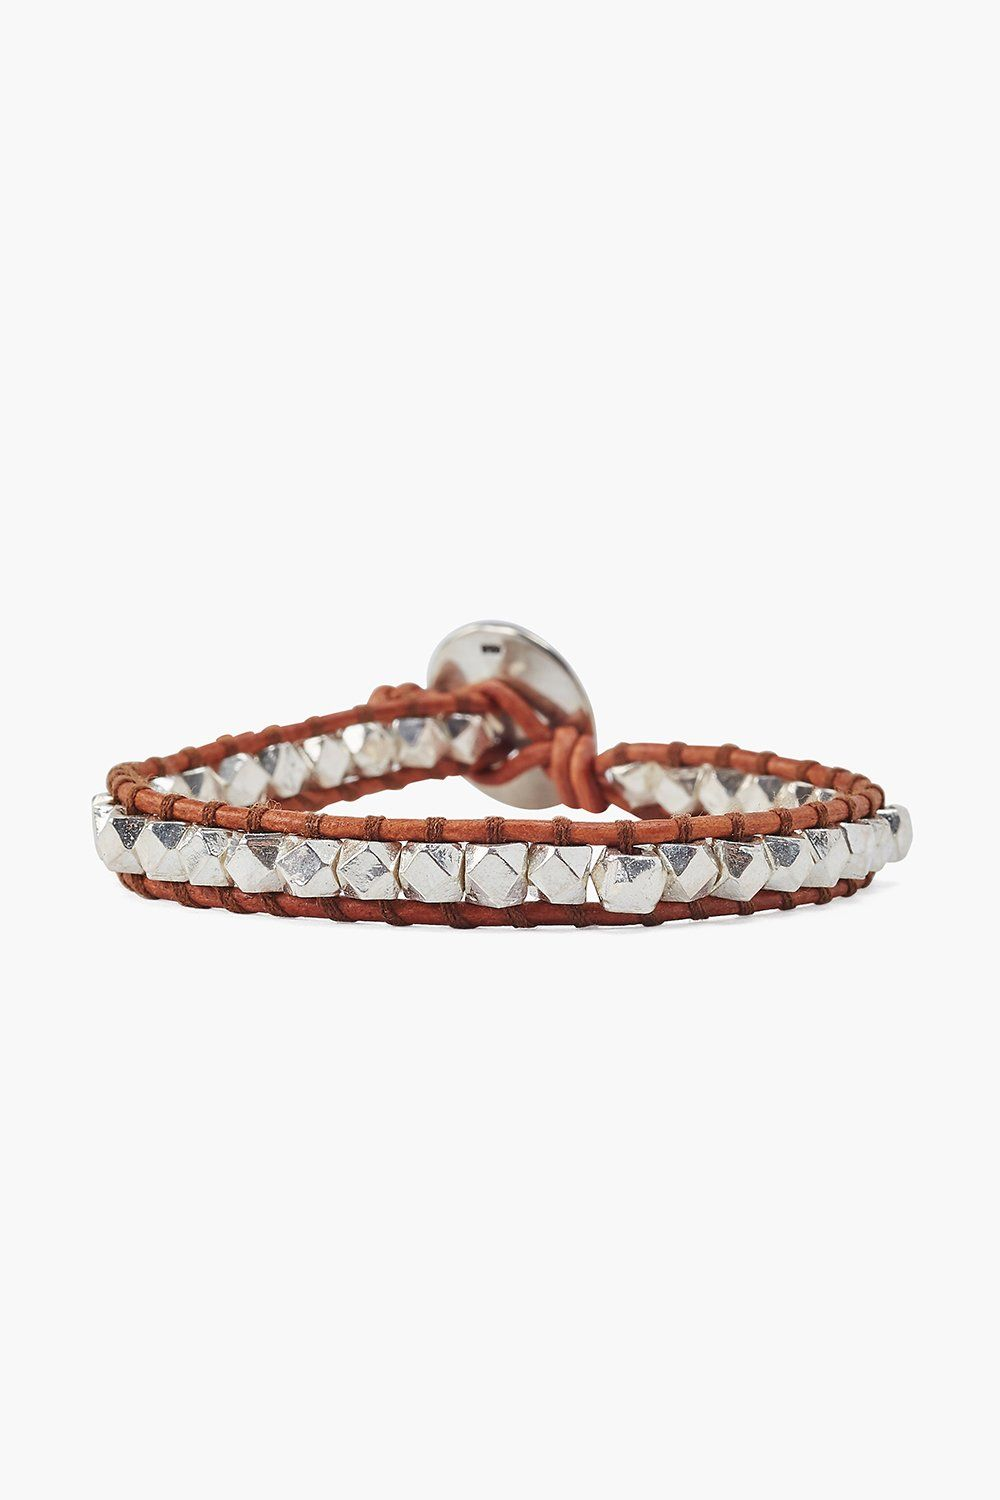 Silver and Natural Brown Leather Single Wrap Bracelet